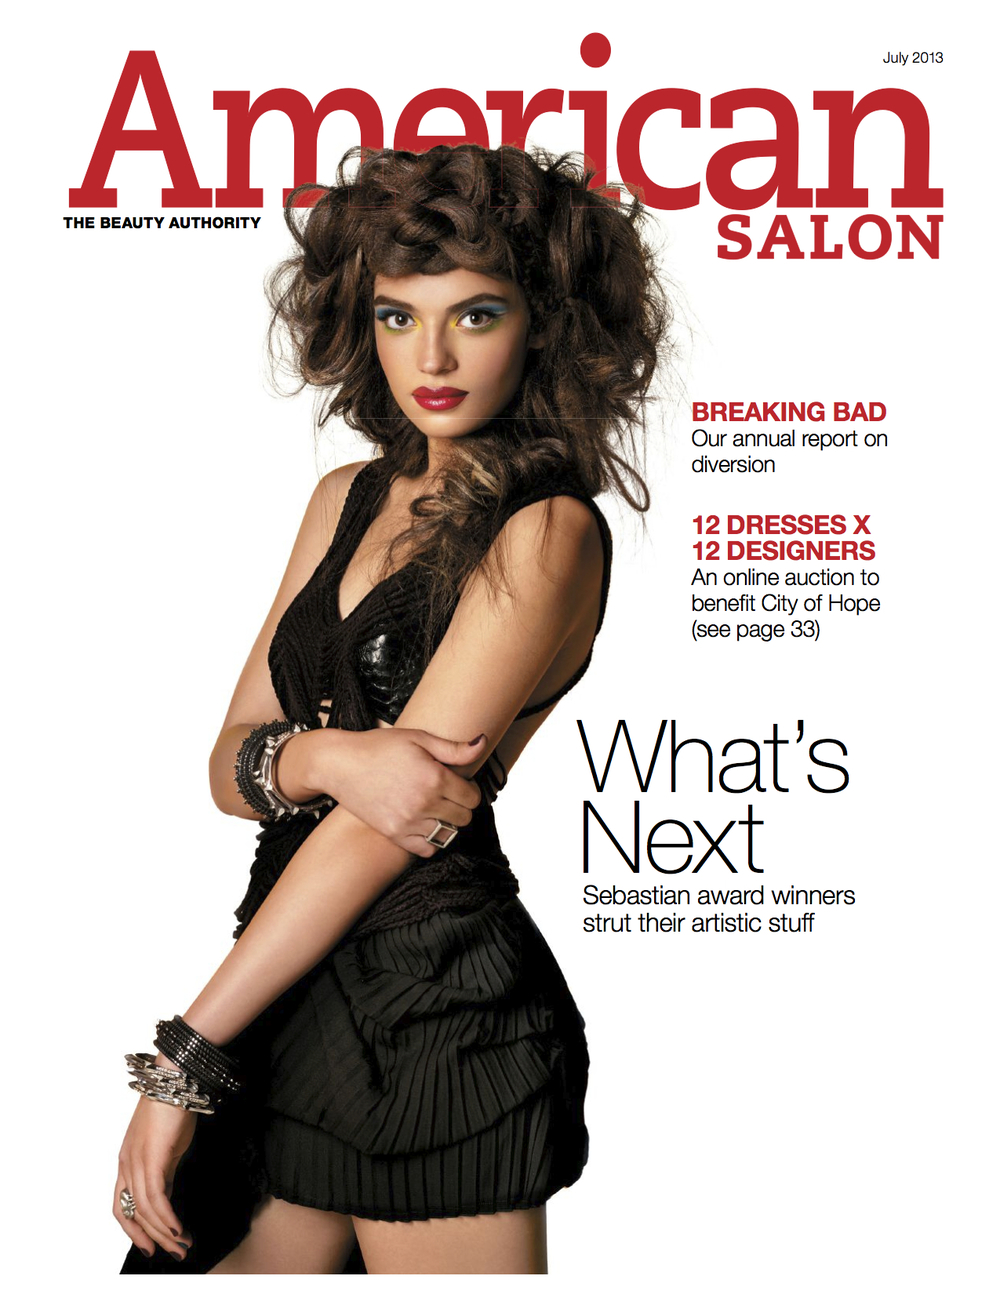 AmericanSalonMag_NicoFeature.jpg